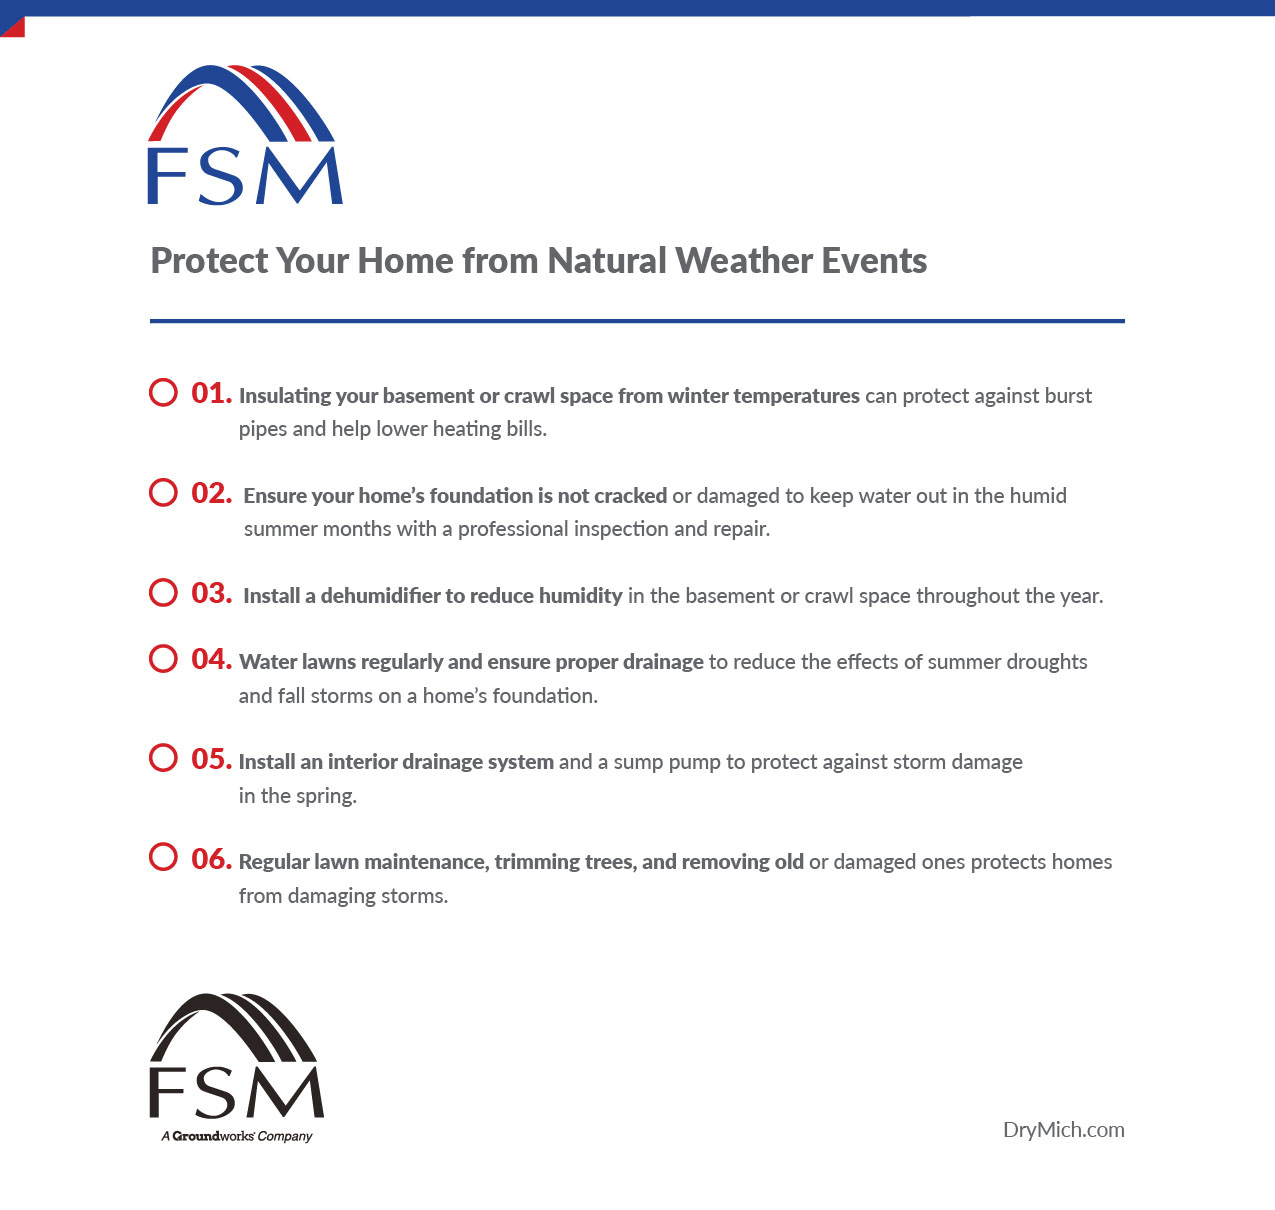 How Natural Weather Events Affect Your Home